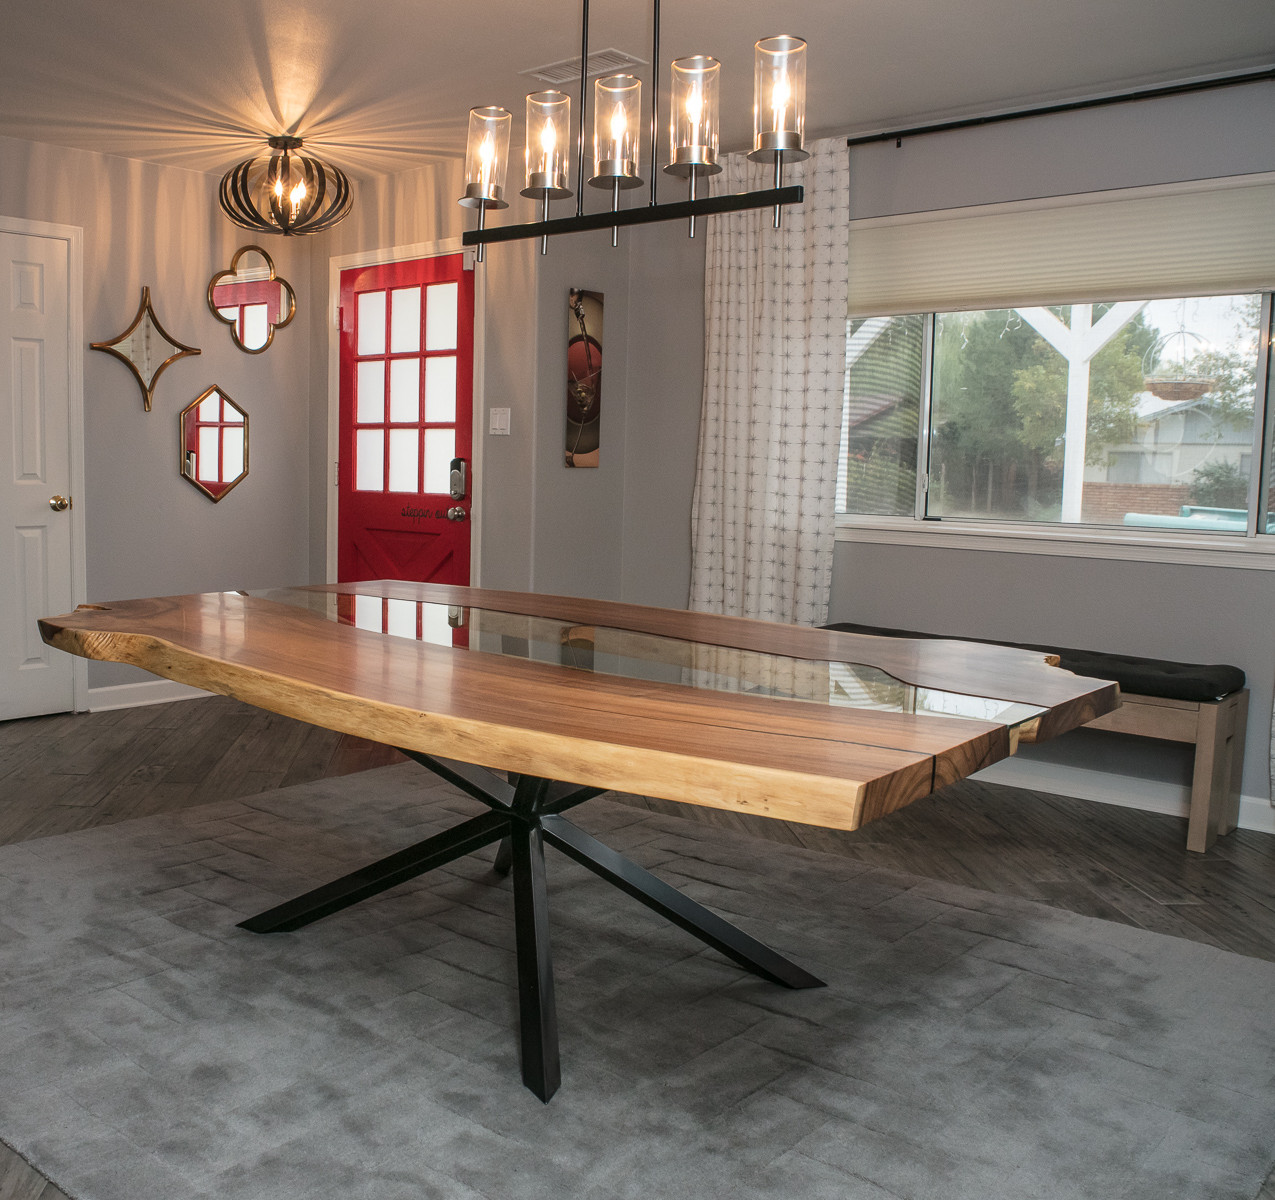 Mesquite Live Edge River Dining Table with glass inlay and modern X base finished in iridescent charcoal gloss